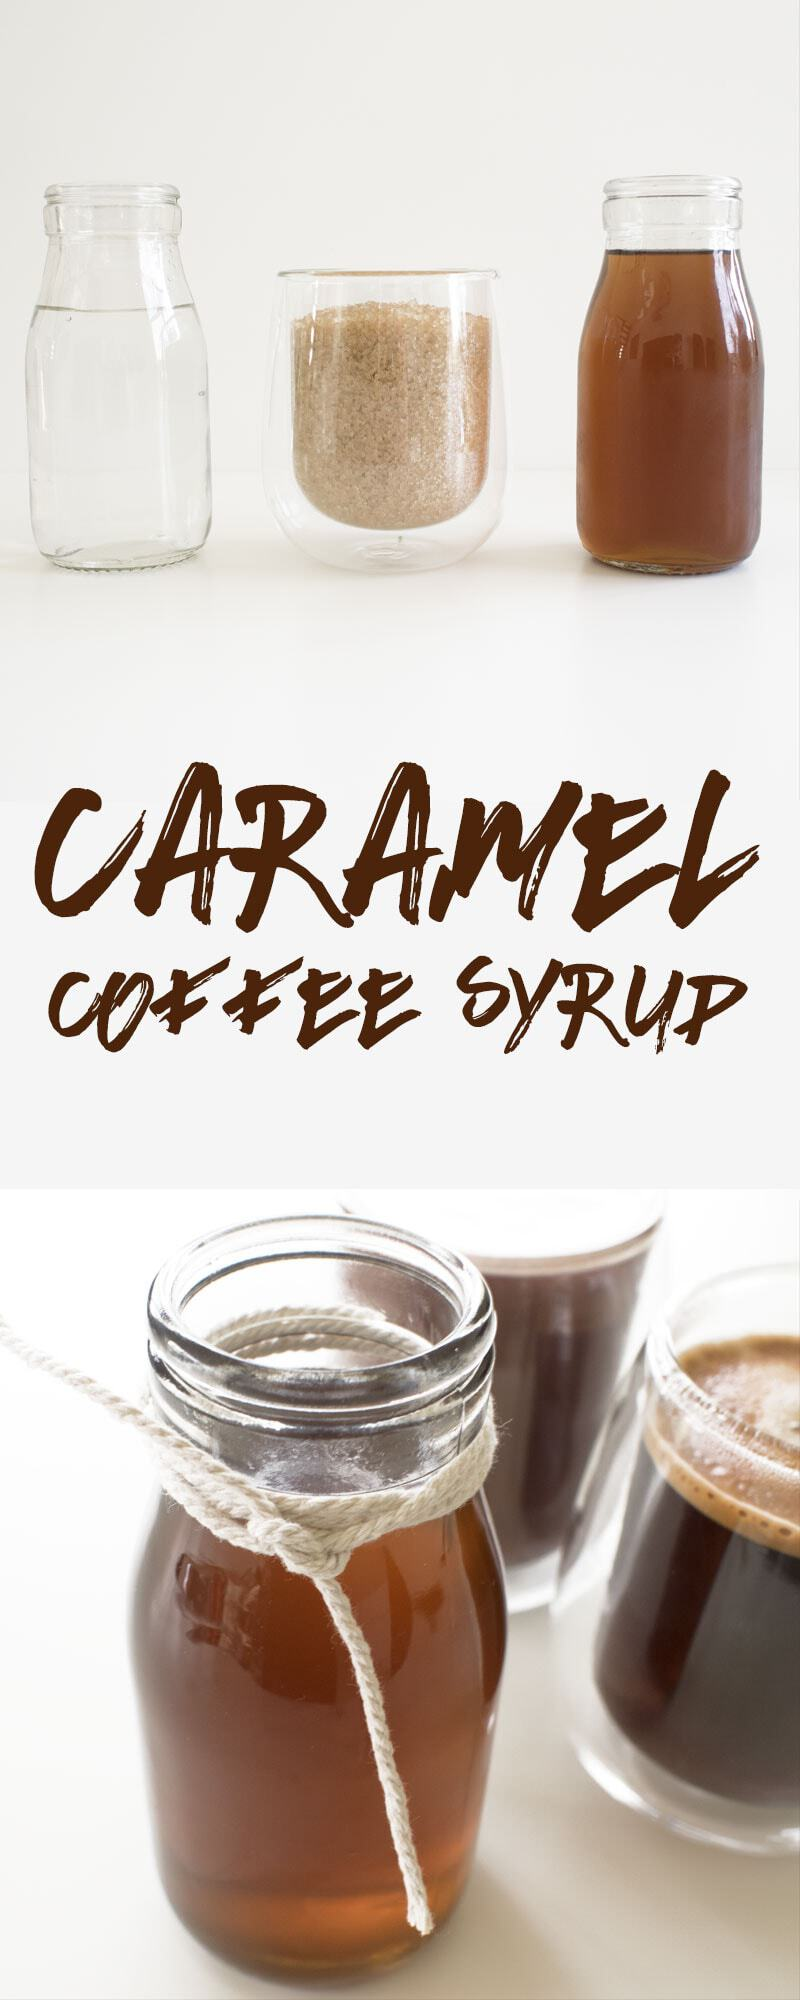 This caramel coffee syrup recipe is not only delicious but also economical and with out all the unnecessary additives of store bought syrups